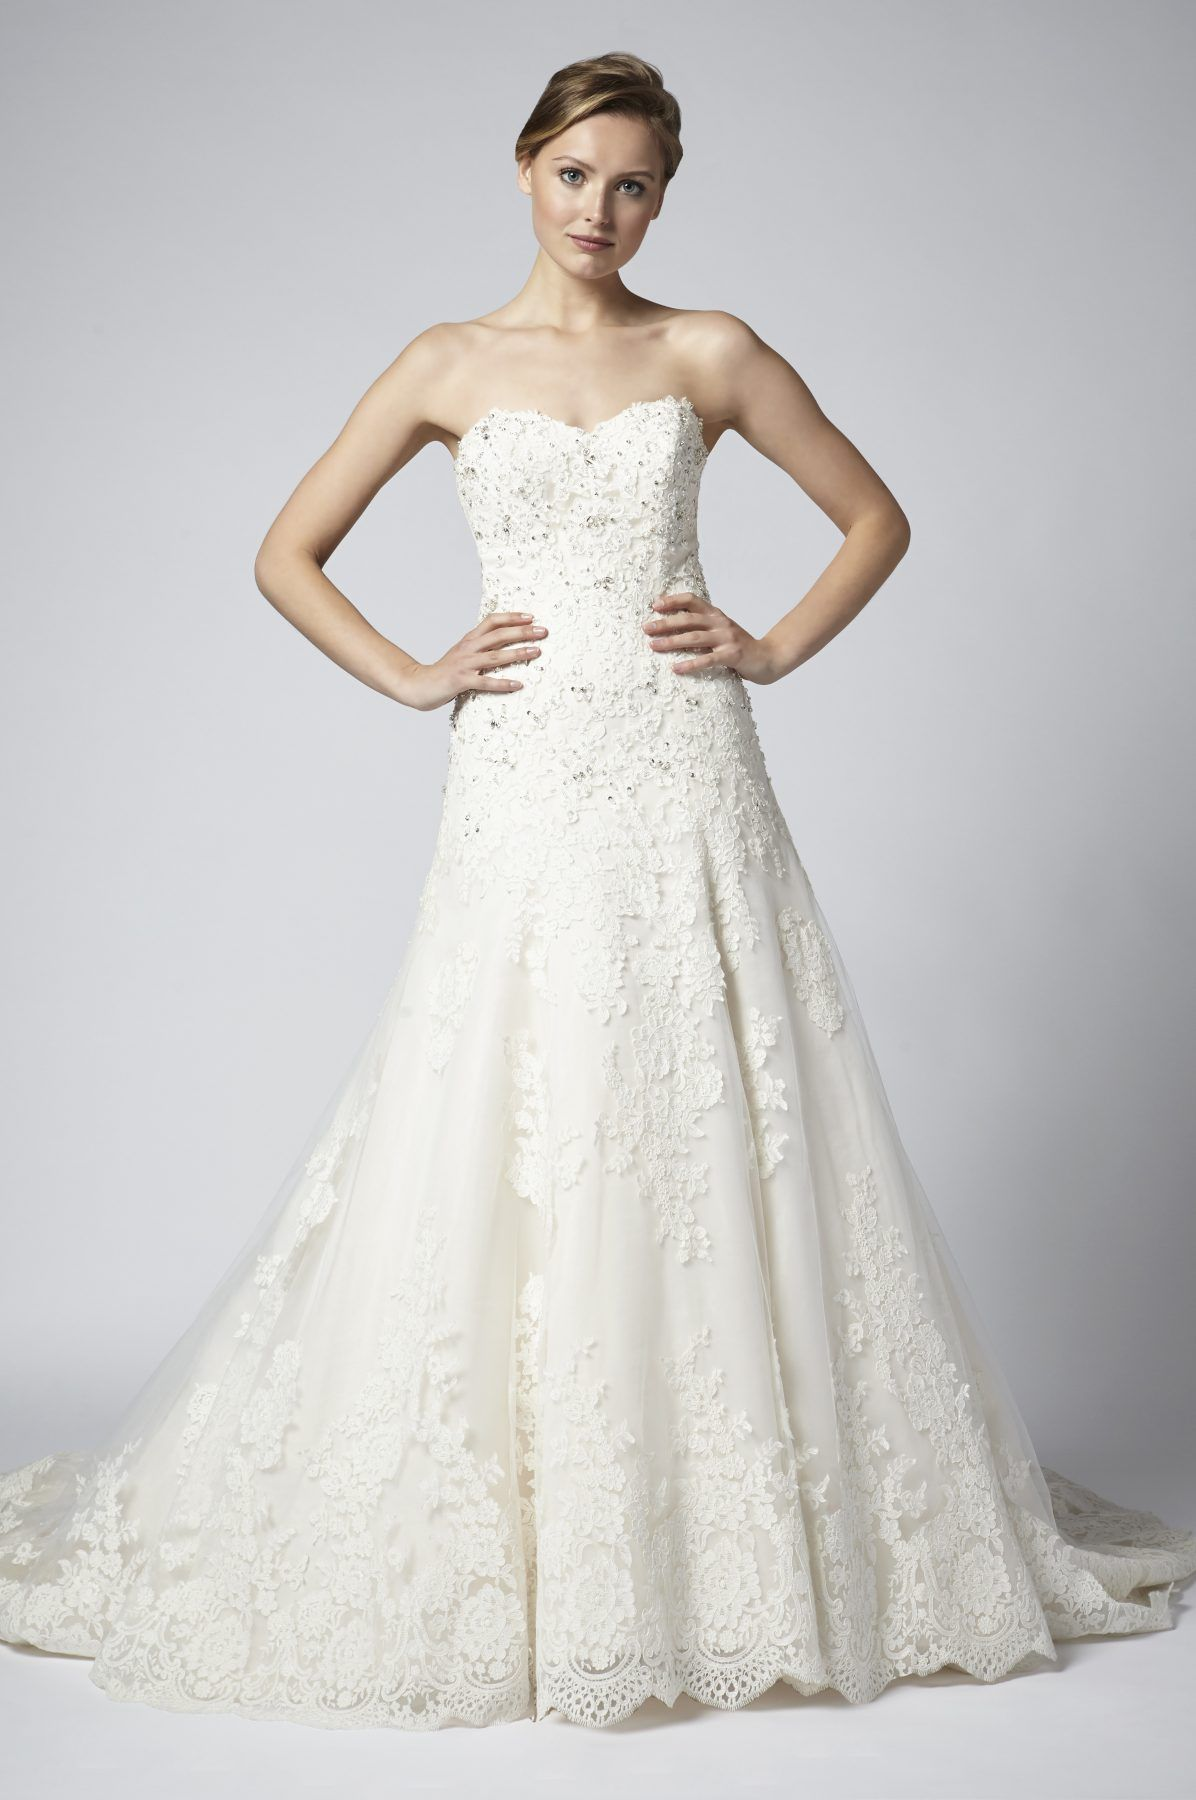 Strapless Lace Beaded A Line Wedding Dress With Sweetheart Neckline